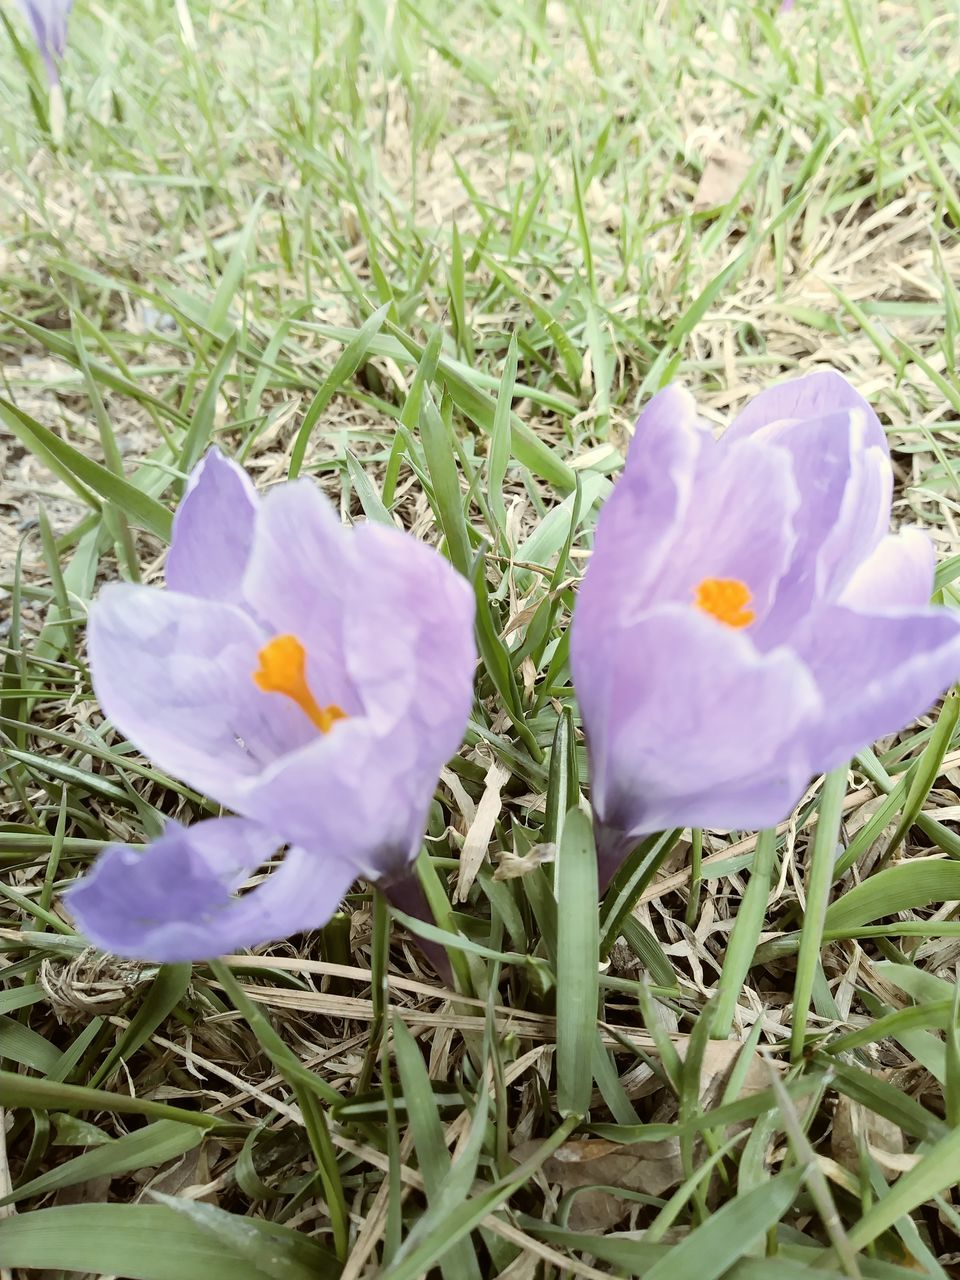 flower, growth, petal, nature, field, freshness, beauty in nature, blooming, fragility, outdoors, grass, no people, day, flower head, close-up, crocus